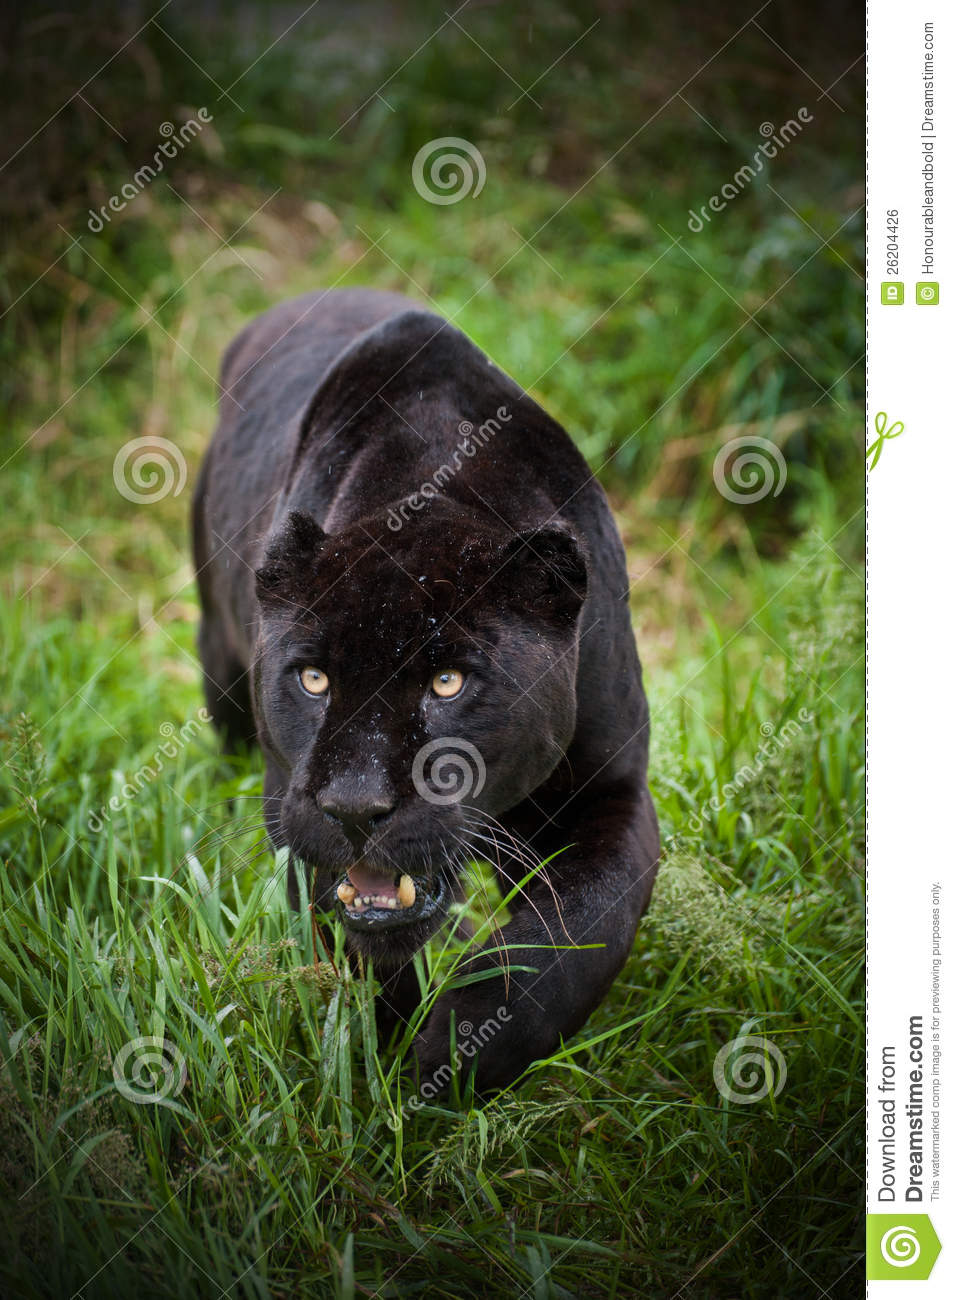 Black Jaguar Panthera Onca Prowling Stock Photo Image